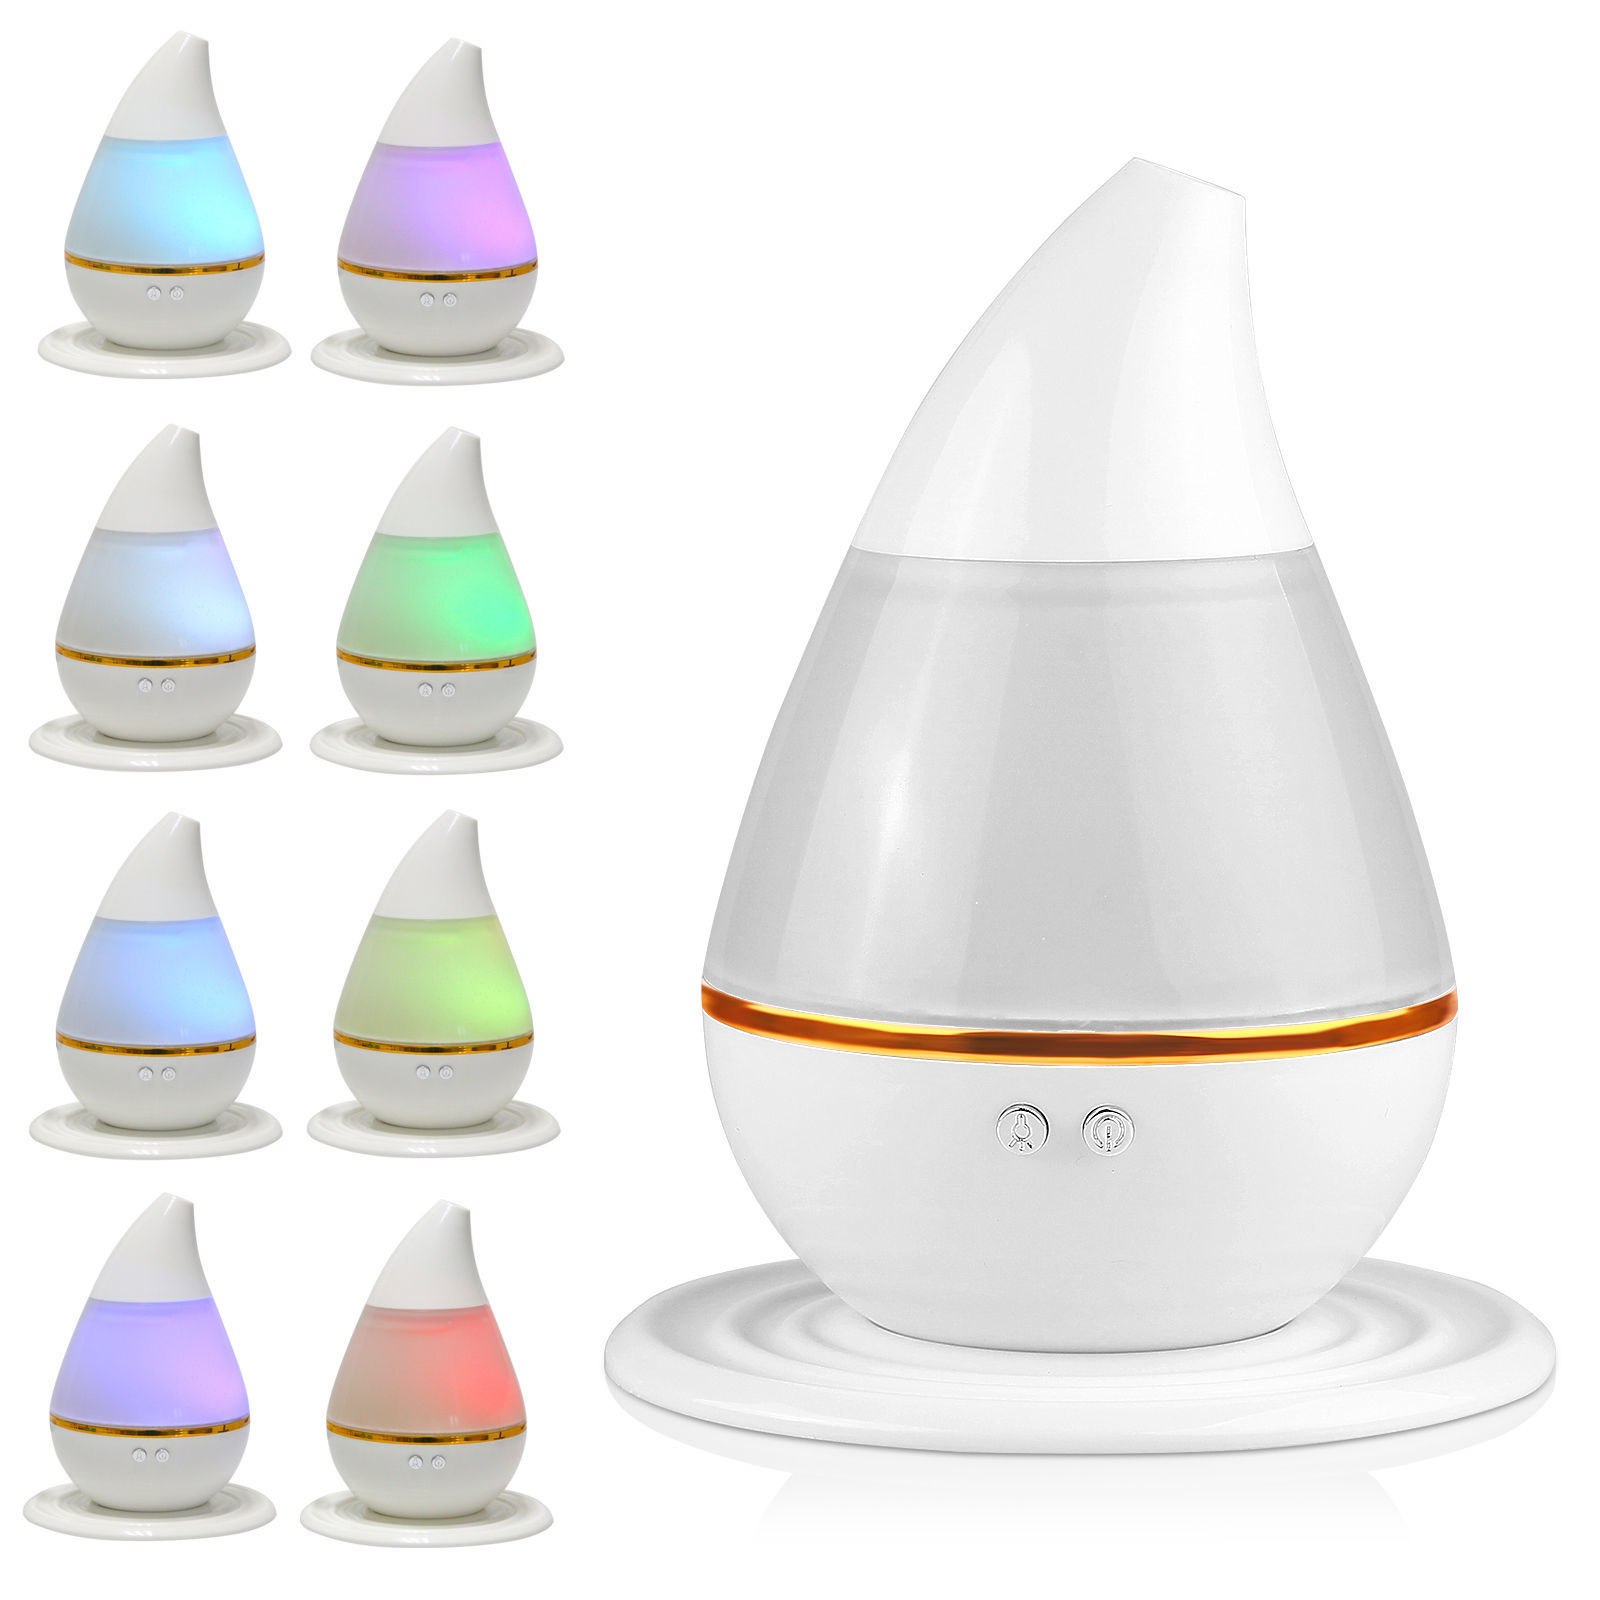 Walmart Electric Oil Diffuser ~ Led aroma humidifier purifier mist maker air aromatherapy